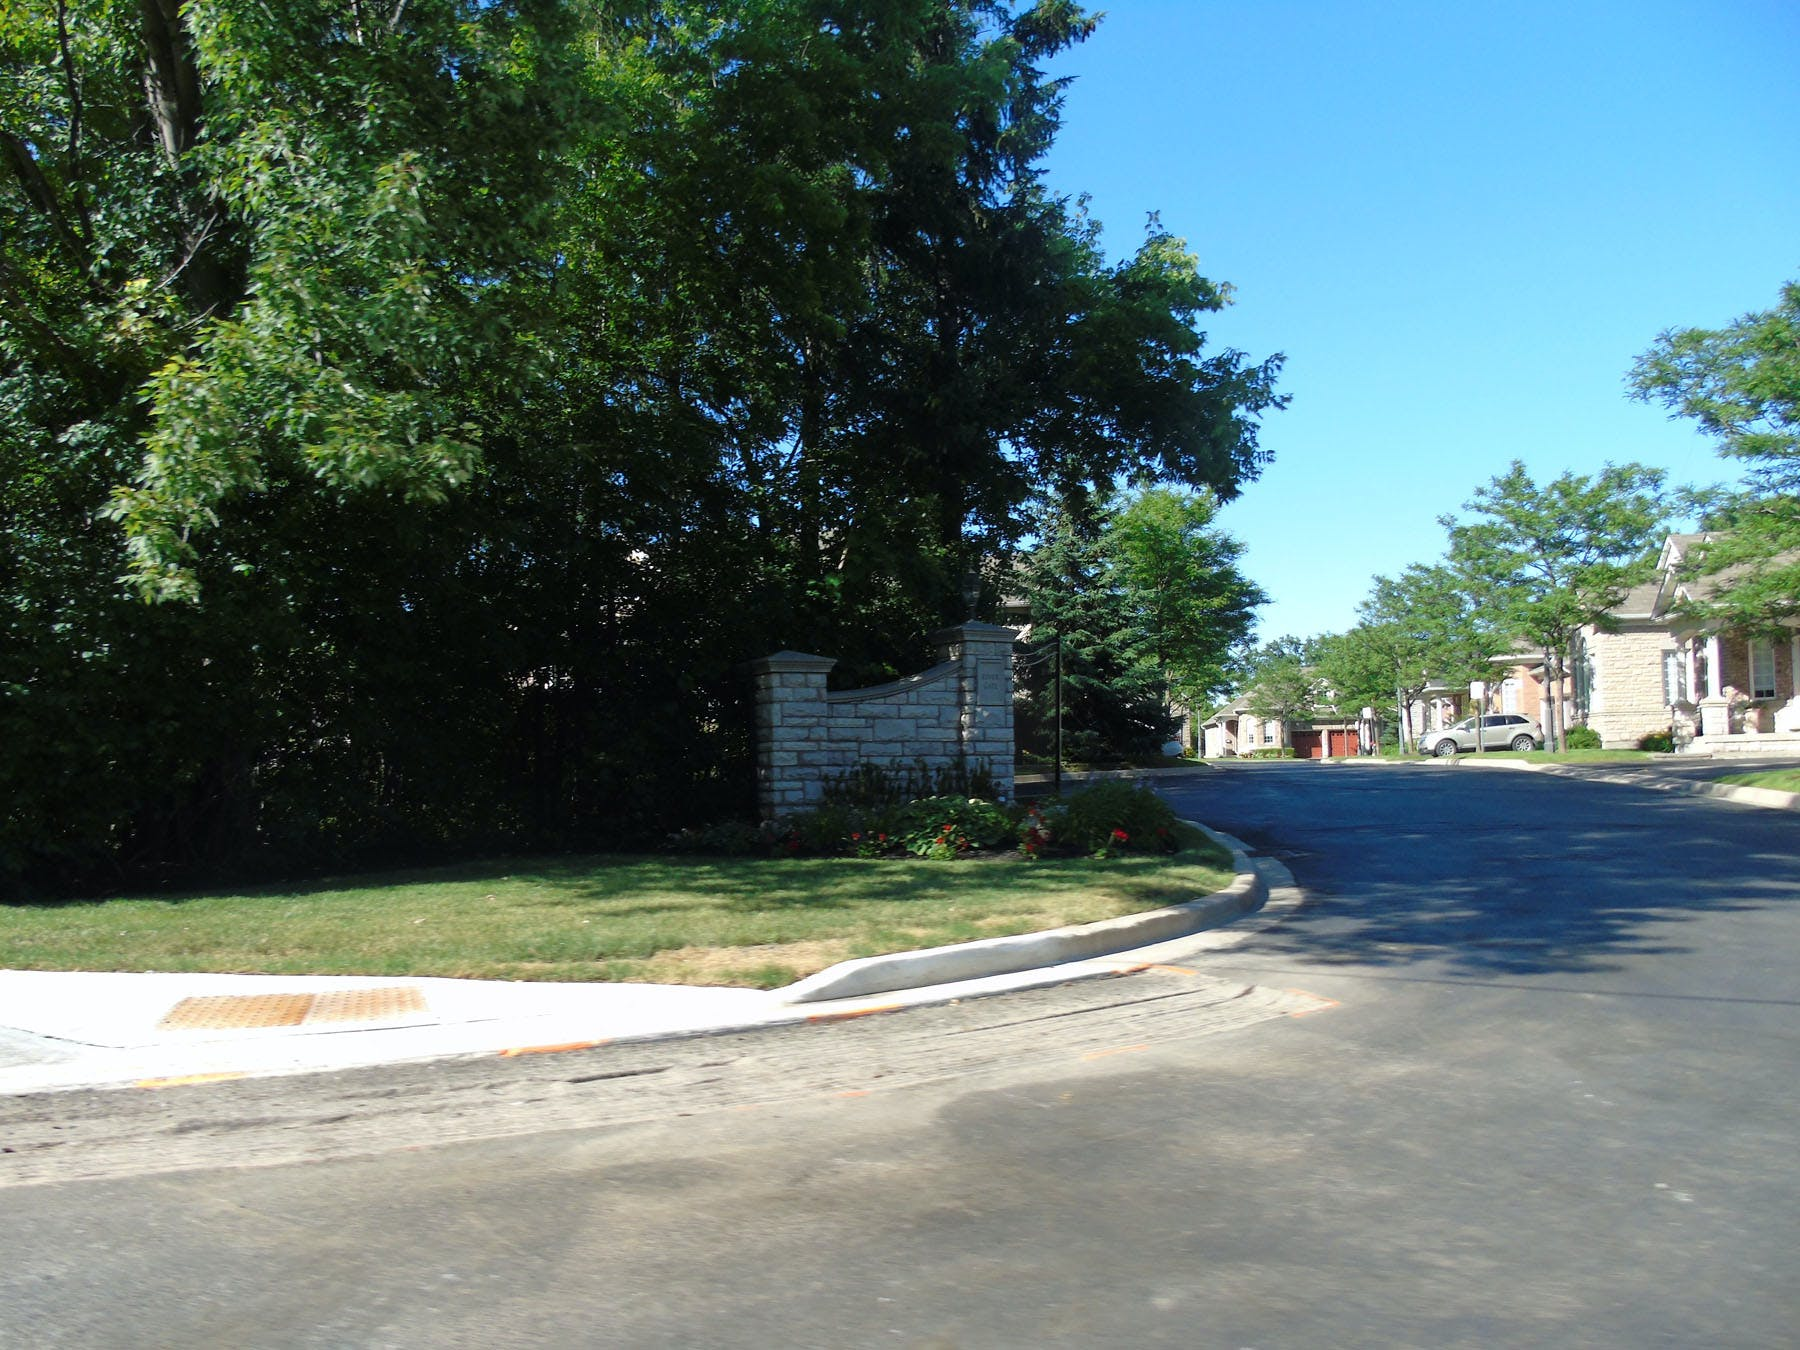 Residential areas along the Creditview Road Scenic Corridor